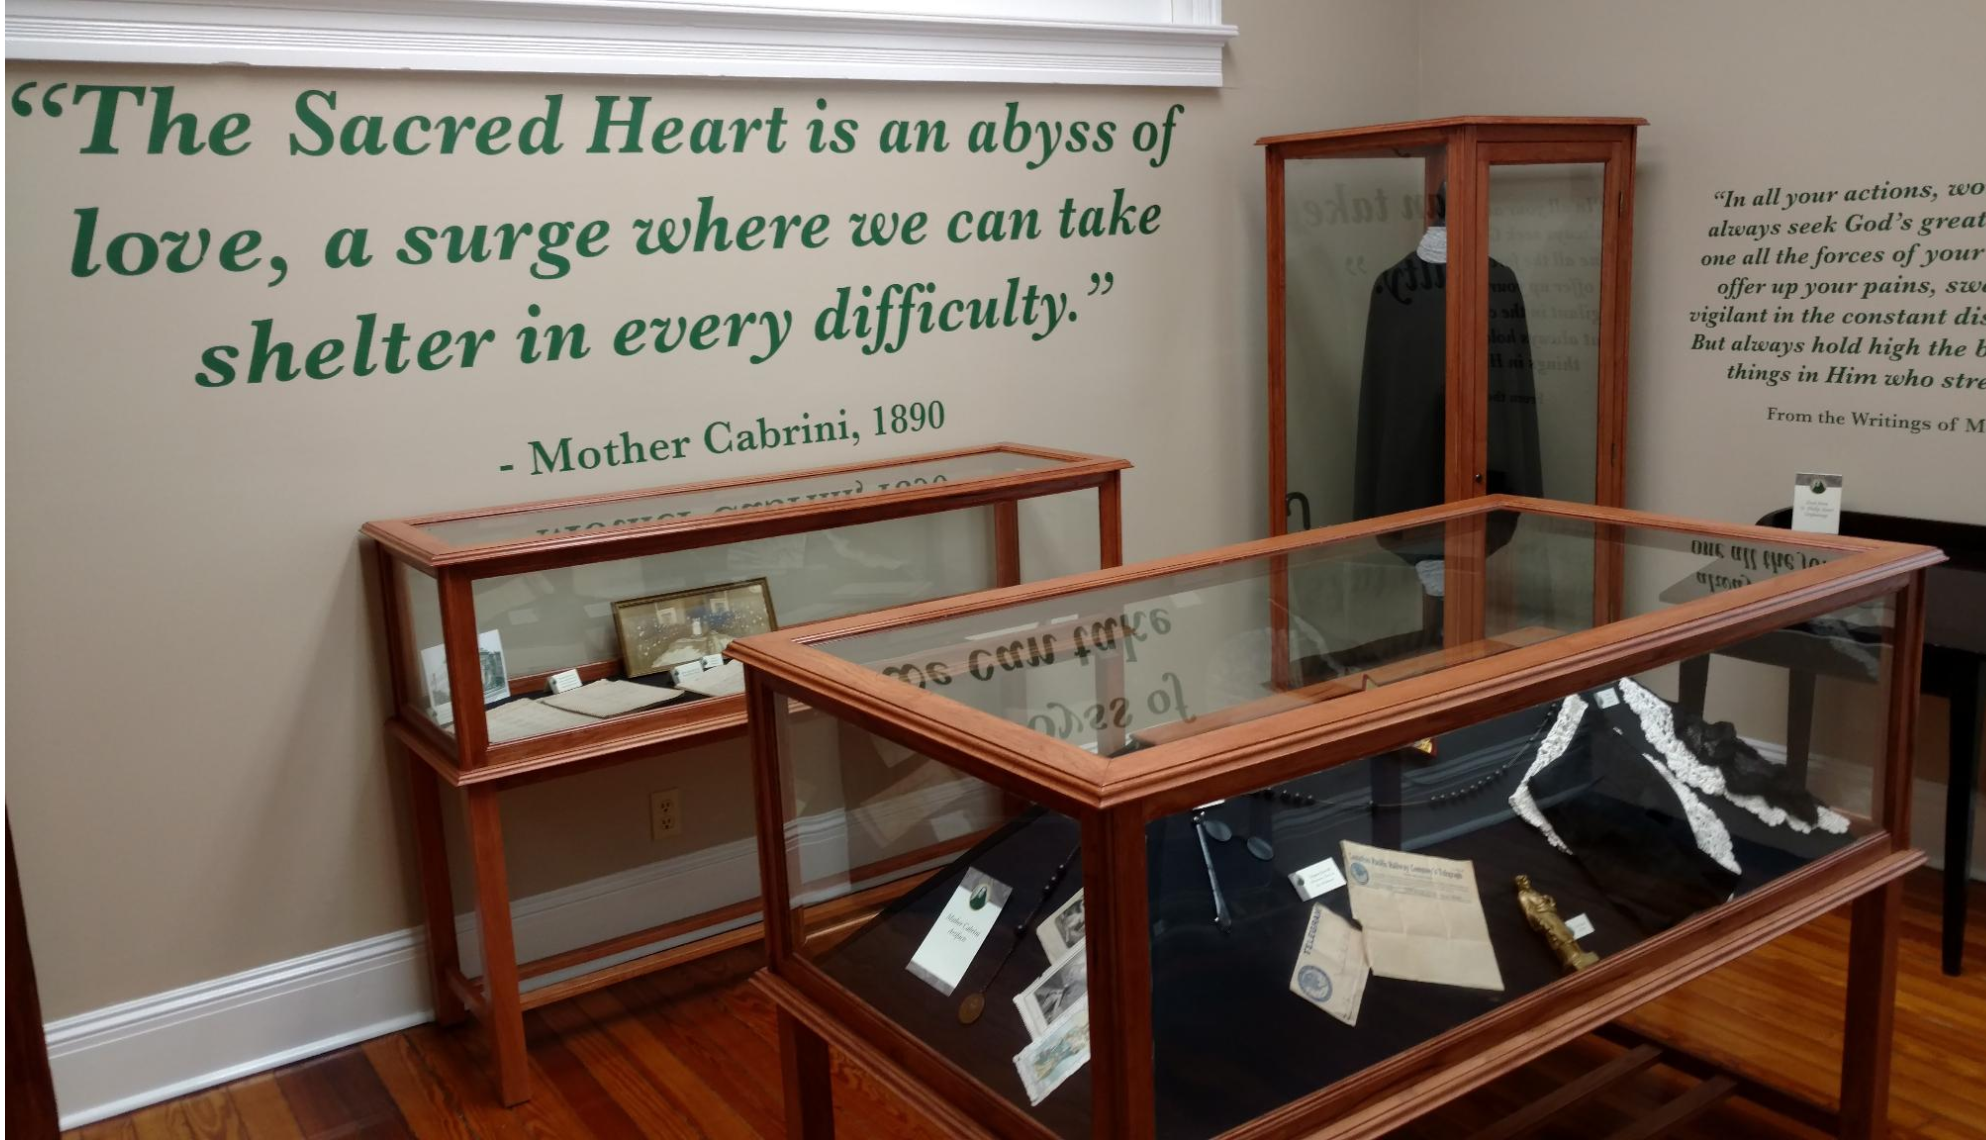 The display cases were built for the Mother Cabrini exhibit at a local high school. The two photos show the five cases that were built. The two in the corner display her habit and the other cases display memorabilia and historical documents.